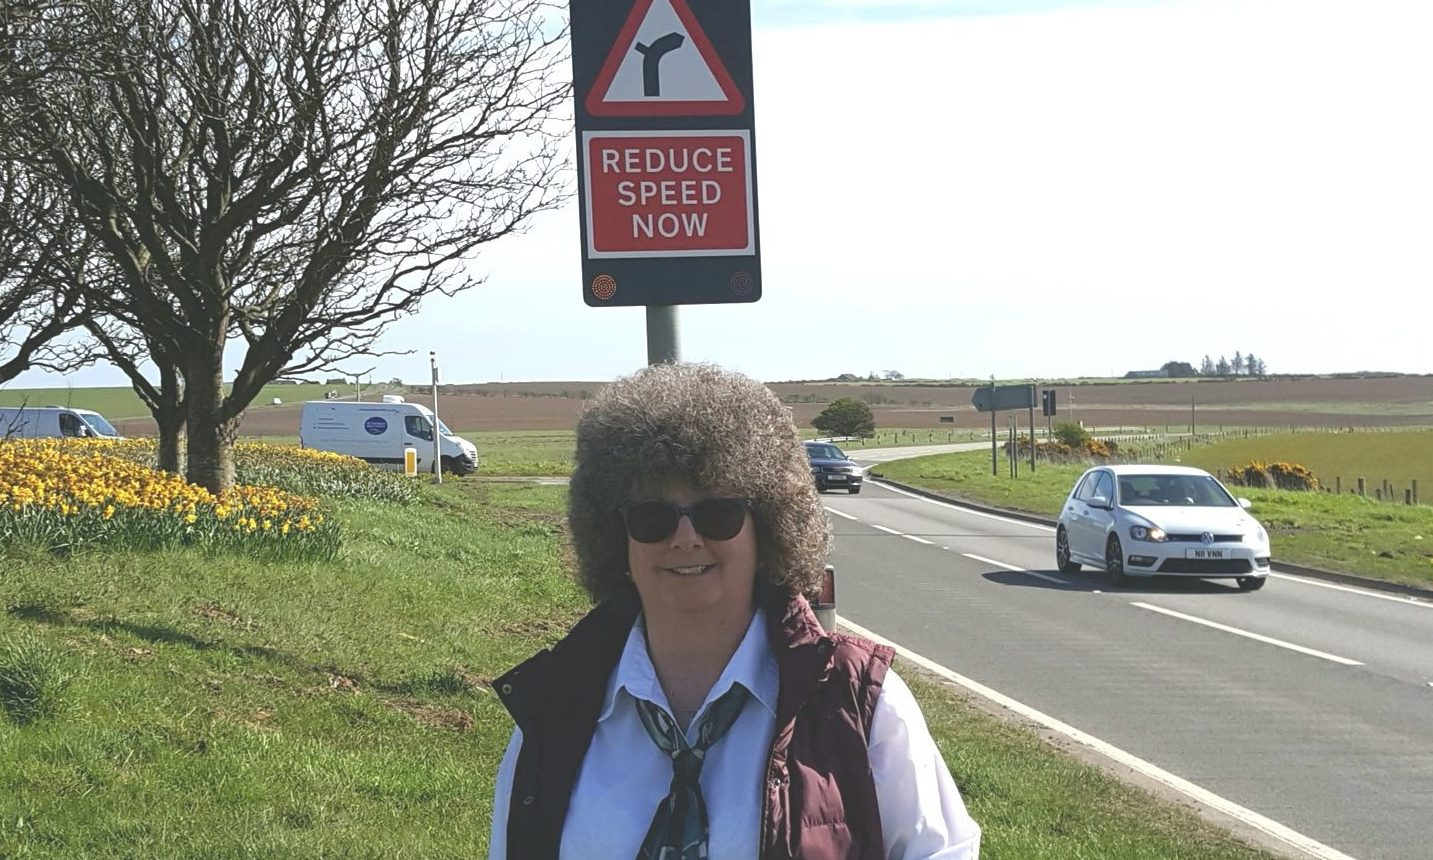 Councillor Gillian Owen has long called for improvements on the A90 and hopes they will happen soon.